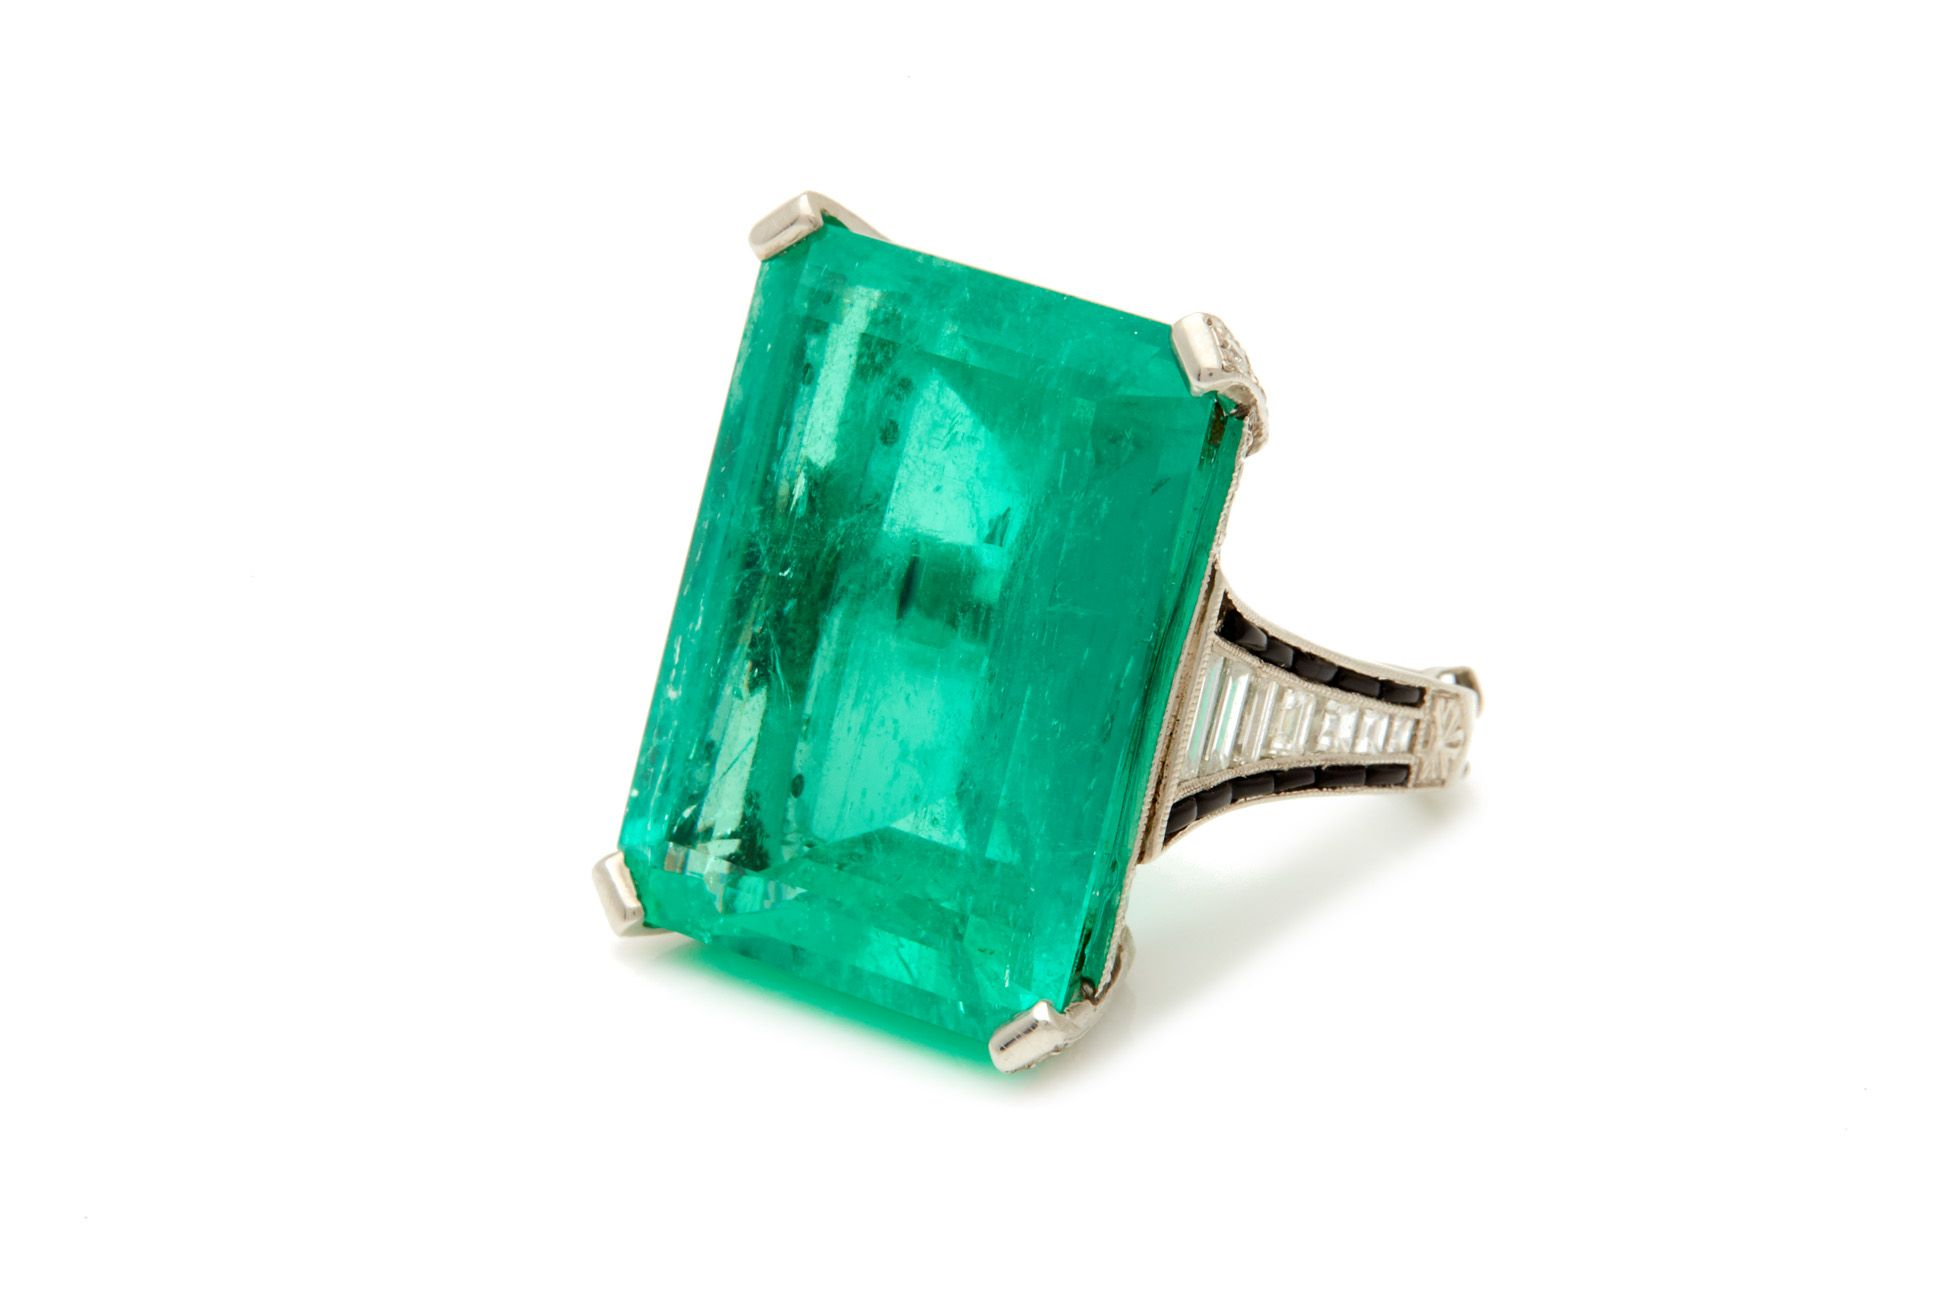 A 38-Carat Emerald Ring is Up for Auction This Week—Here's All You Need to Know